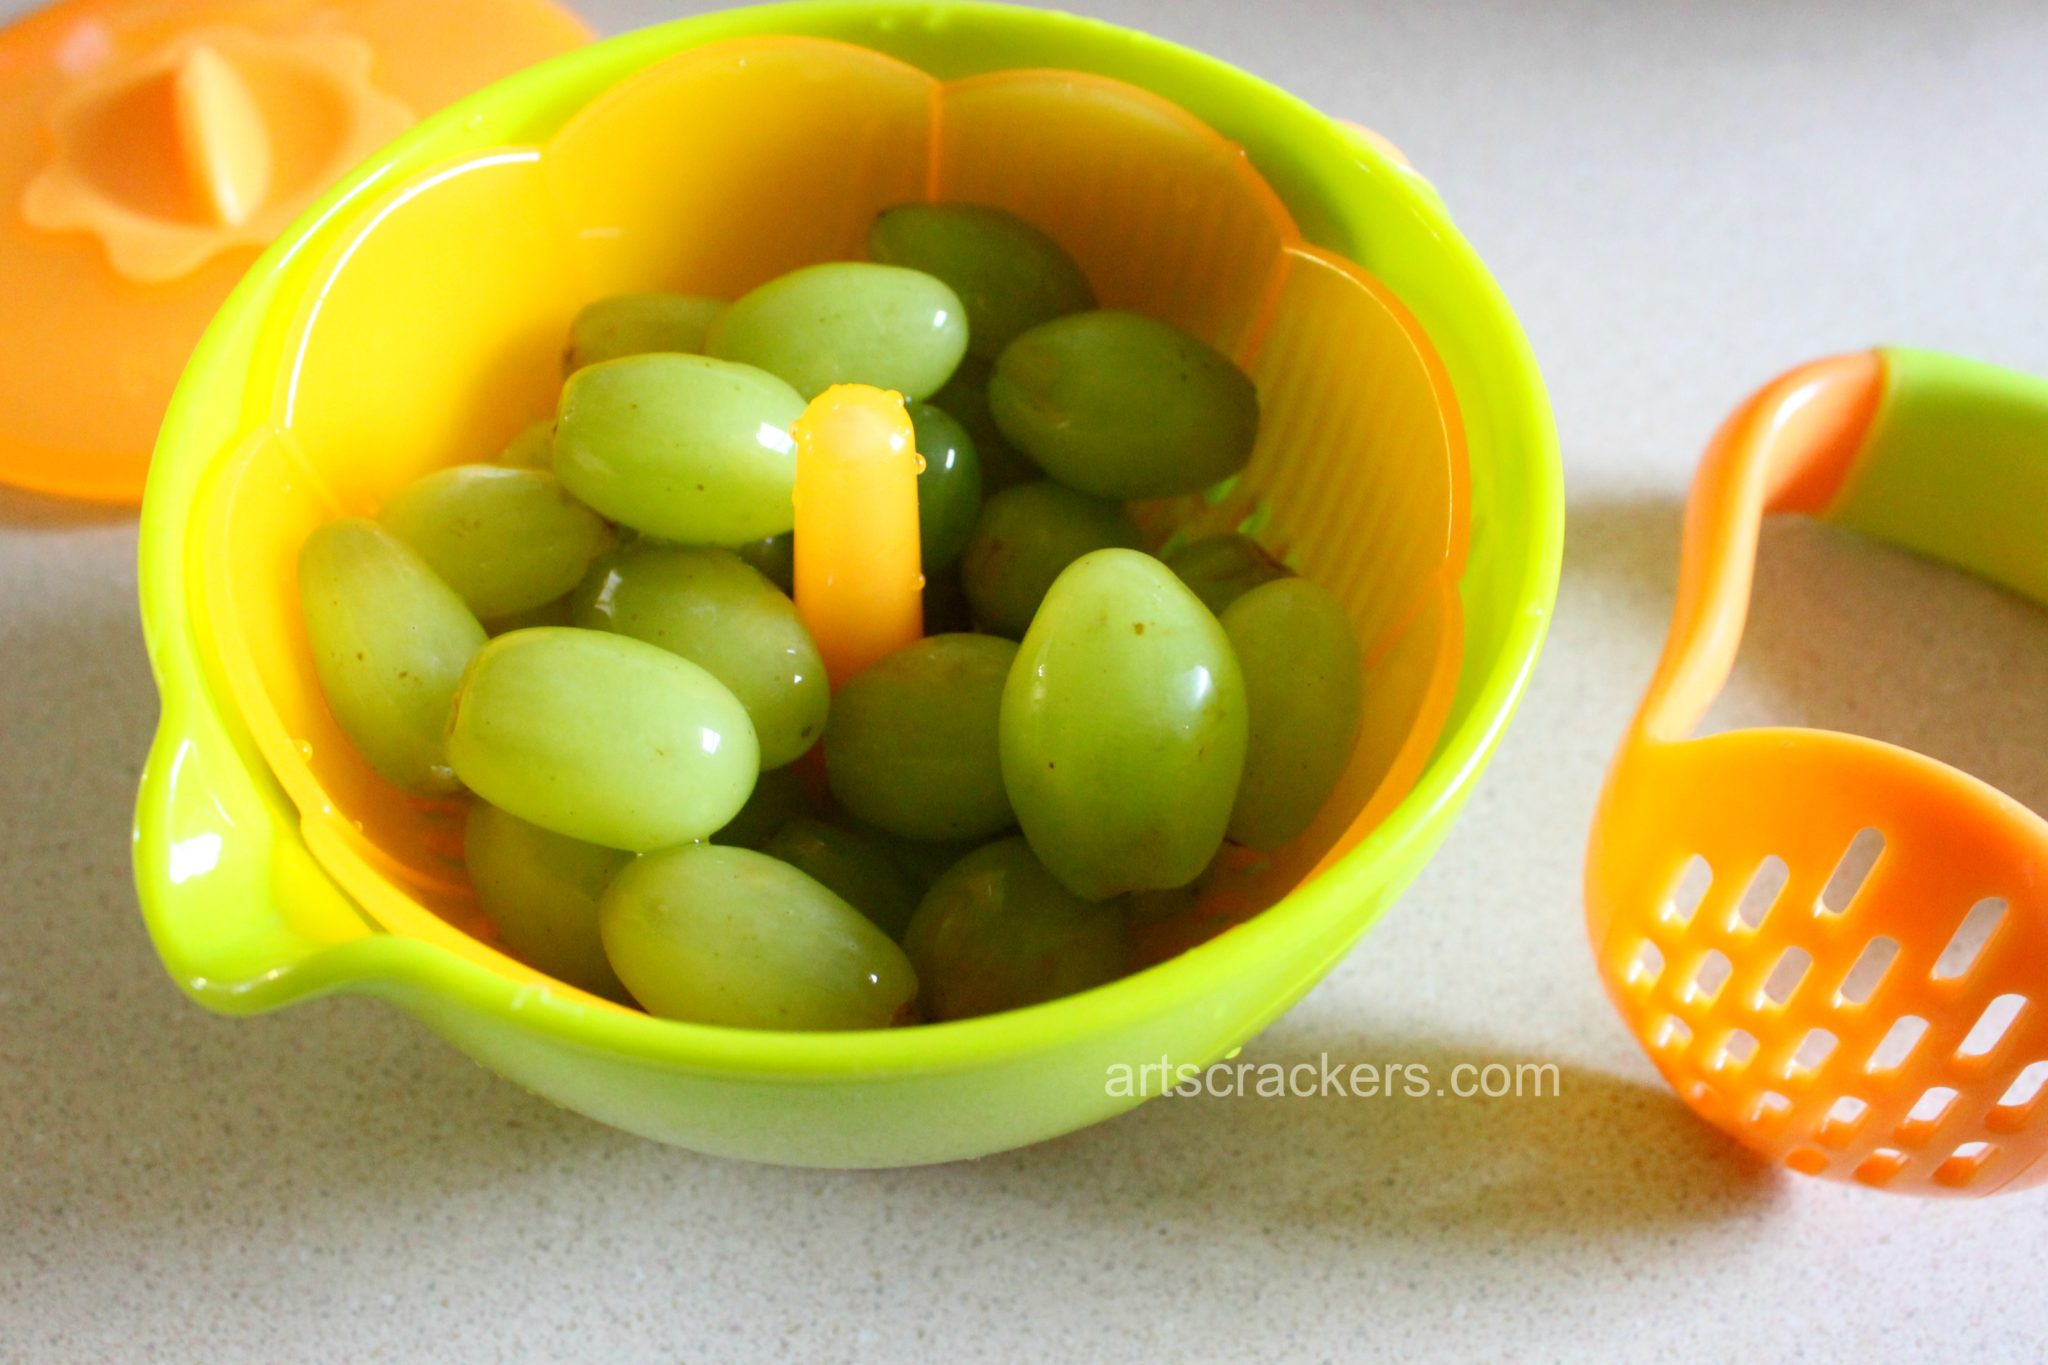 Nuby Green Grapple Pops Grapes